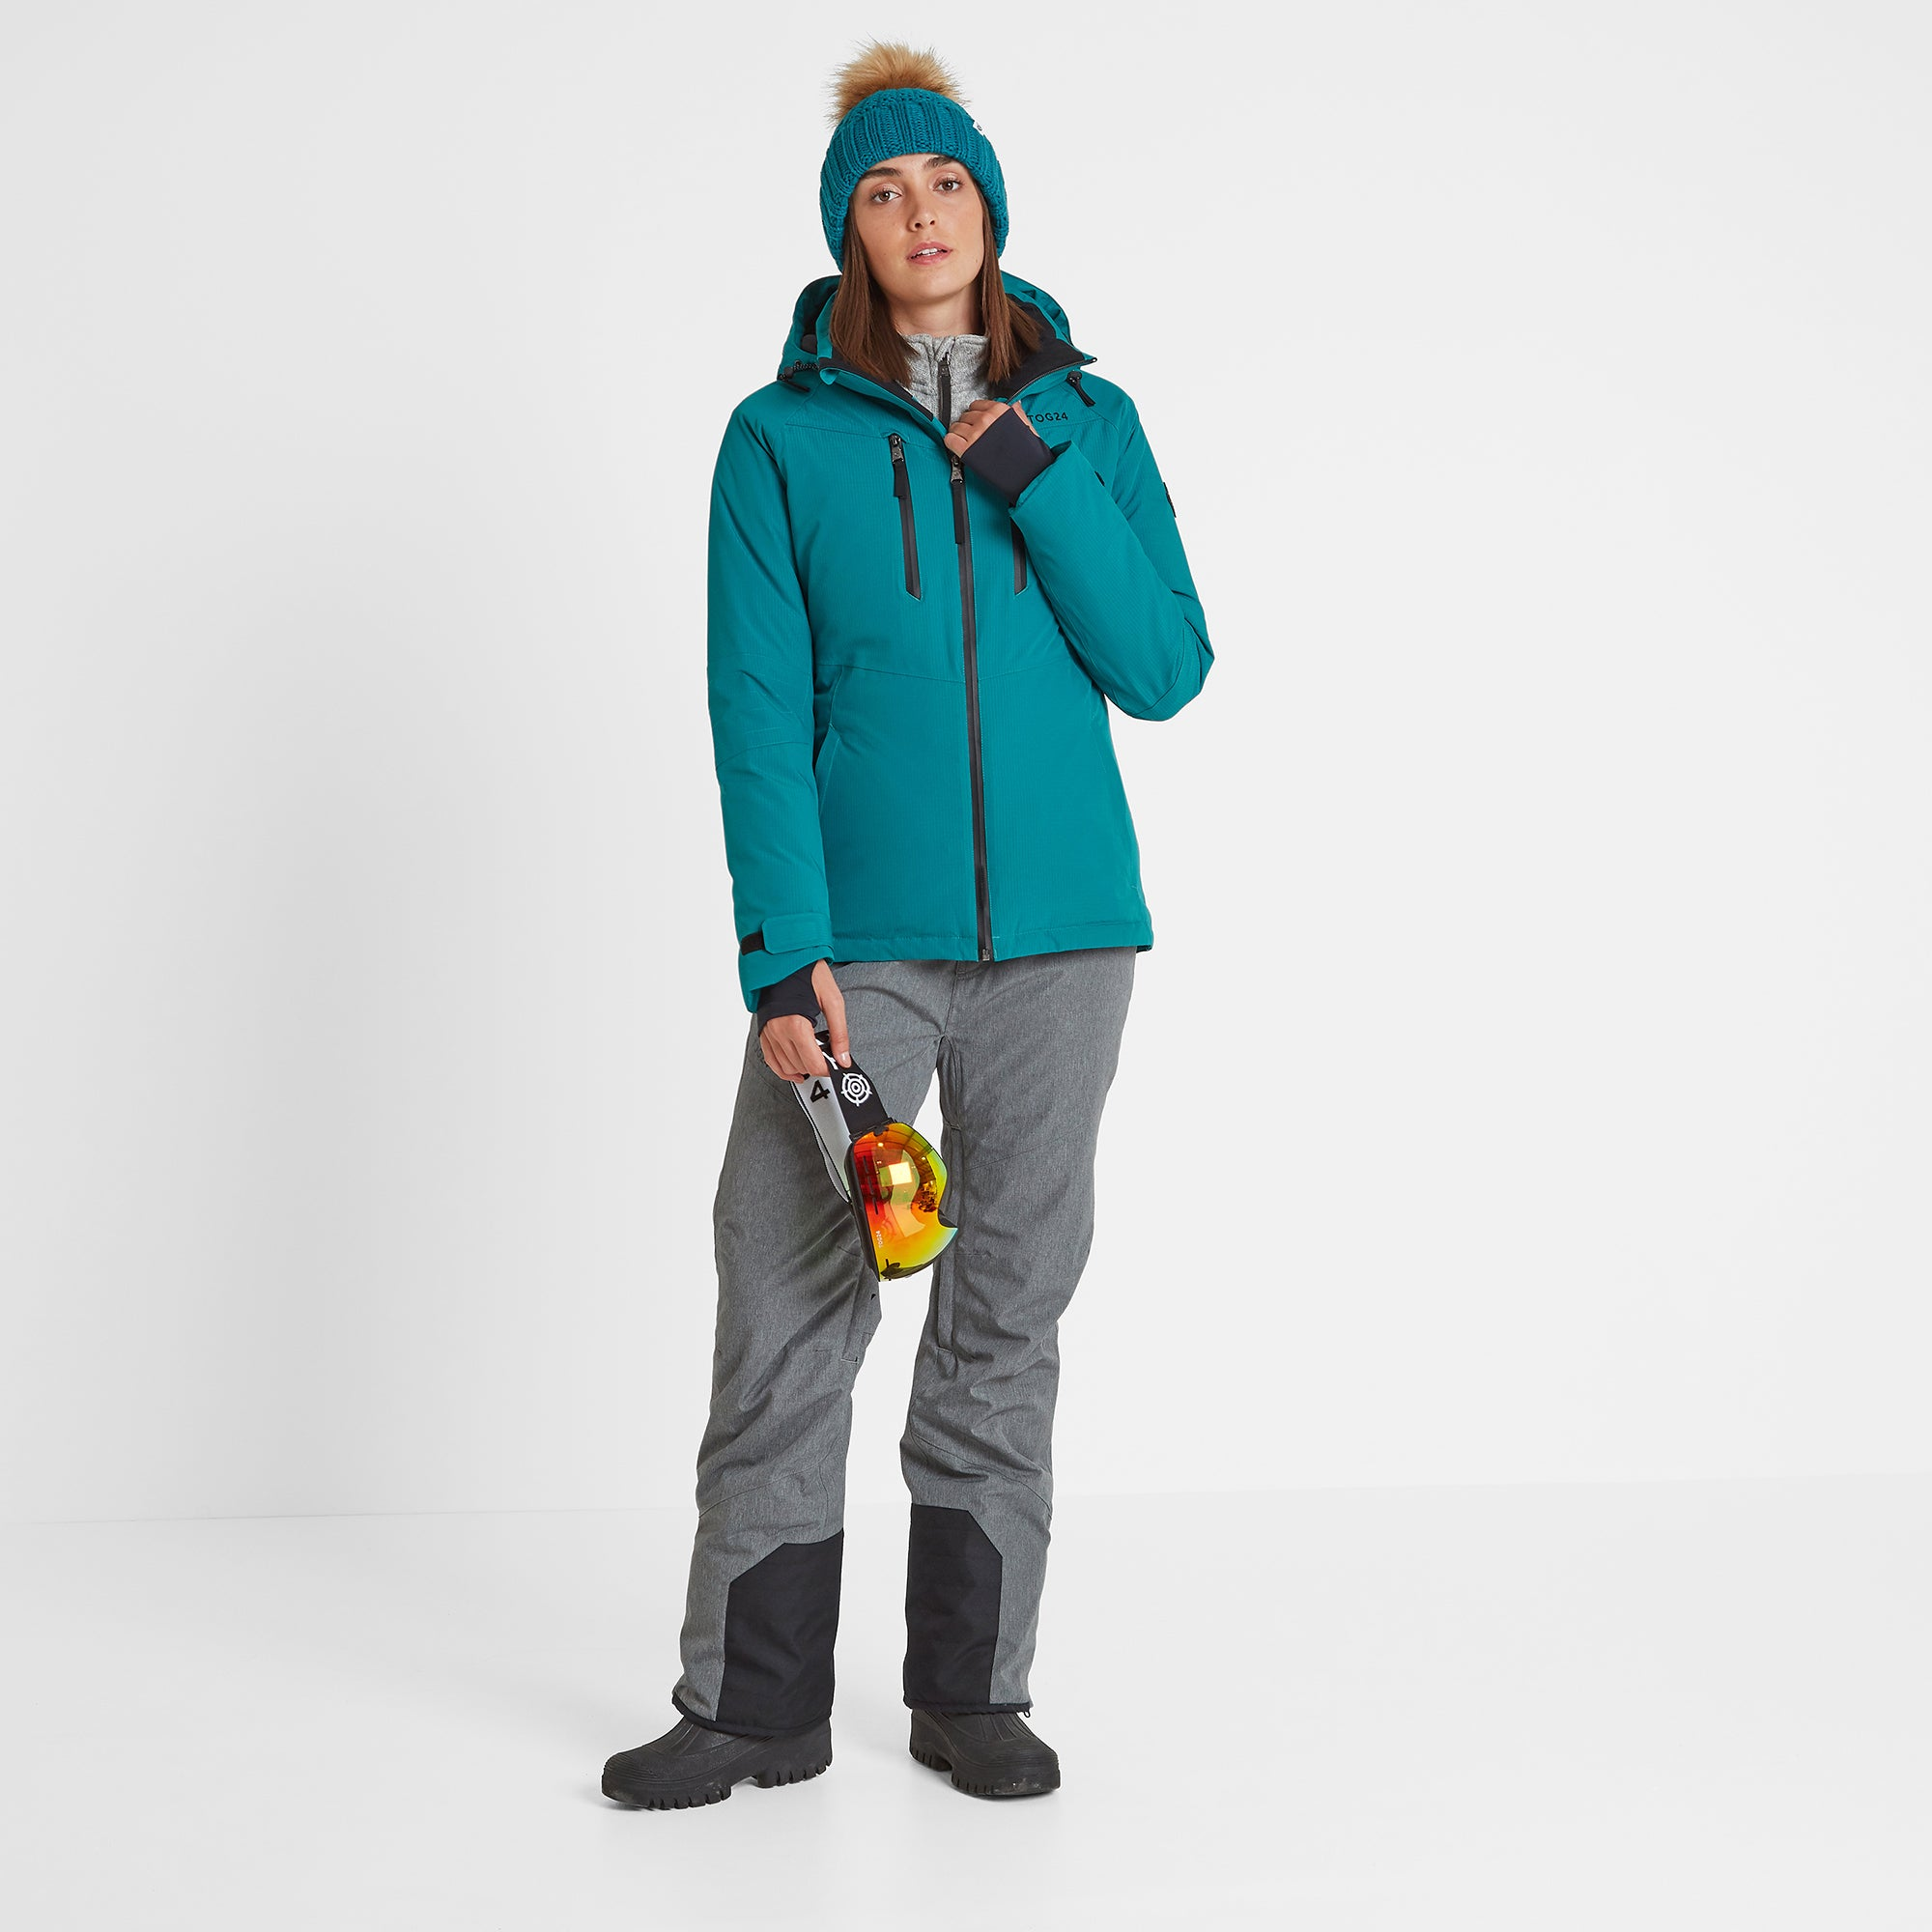 Riley Womens Waterproof Down Fill Ski Jacket - Topaz